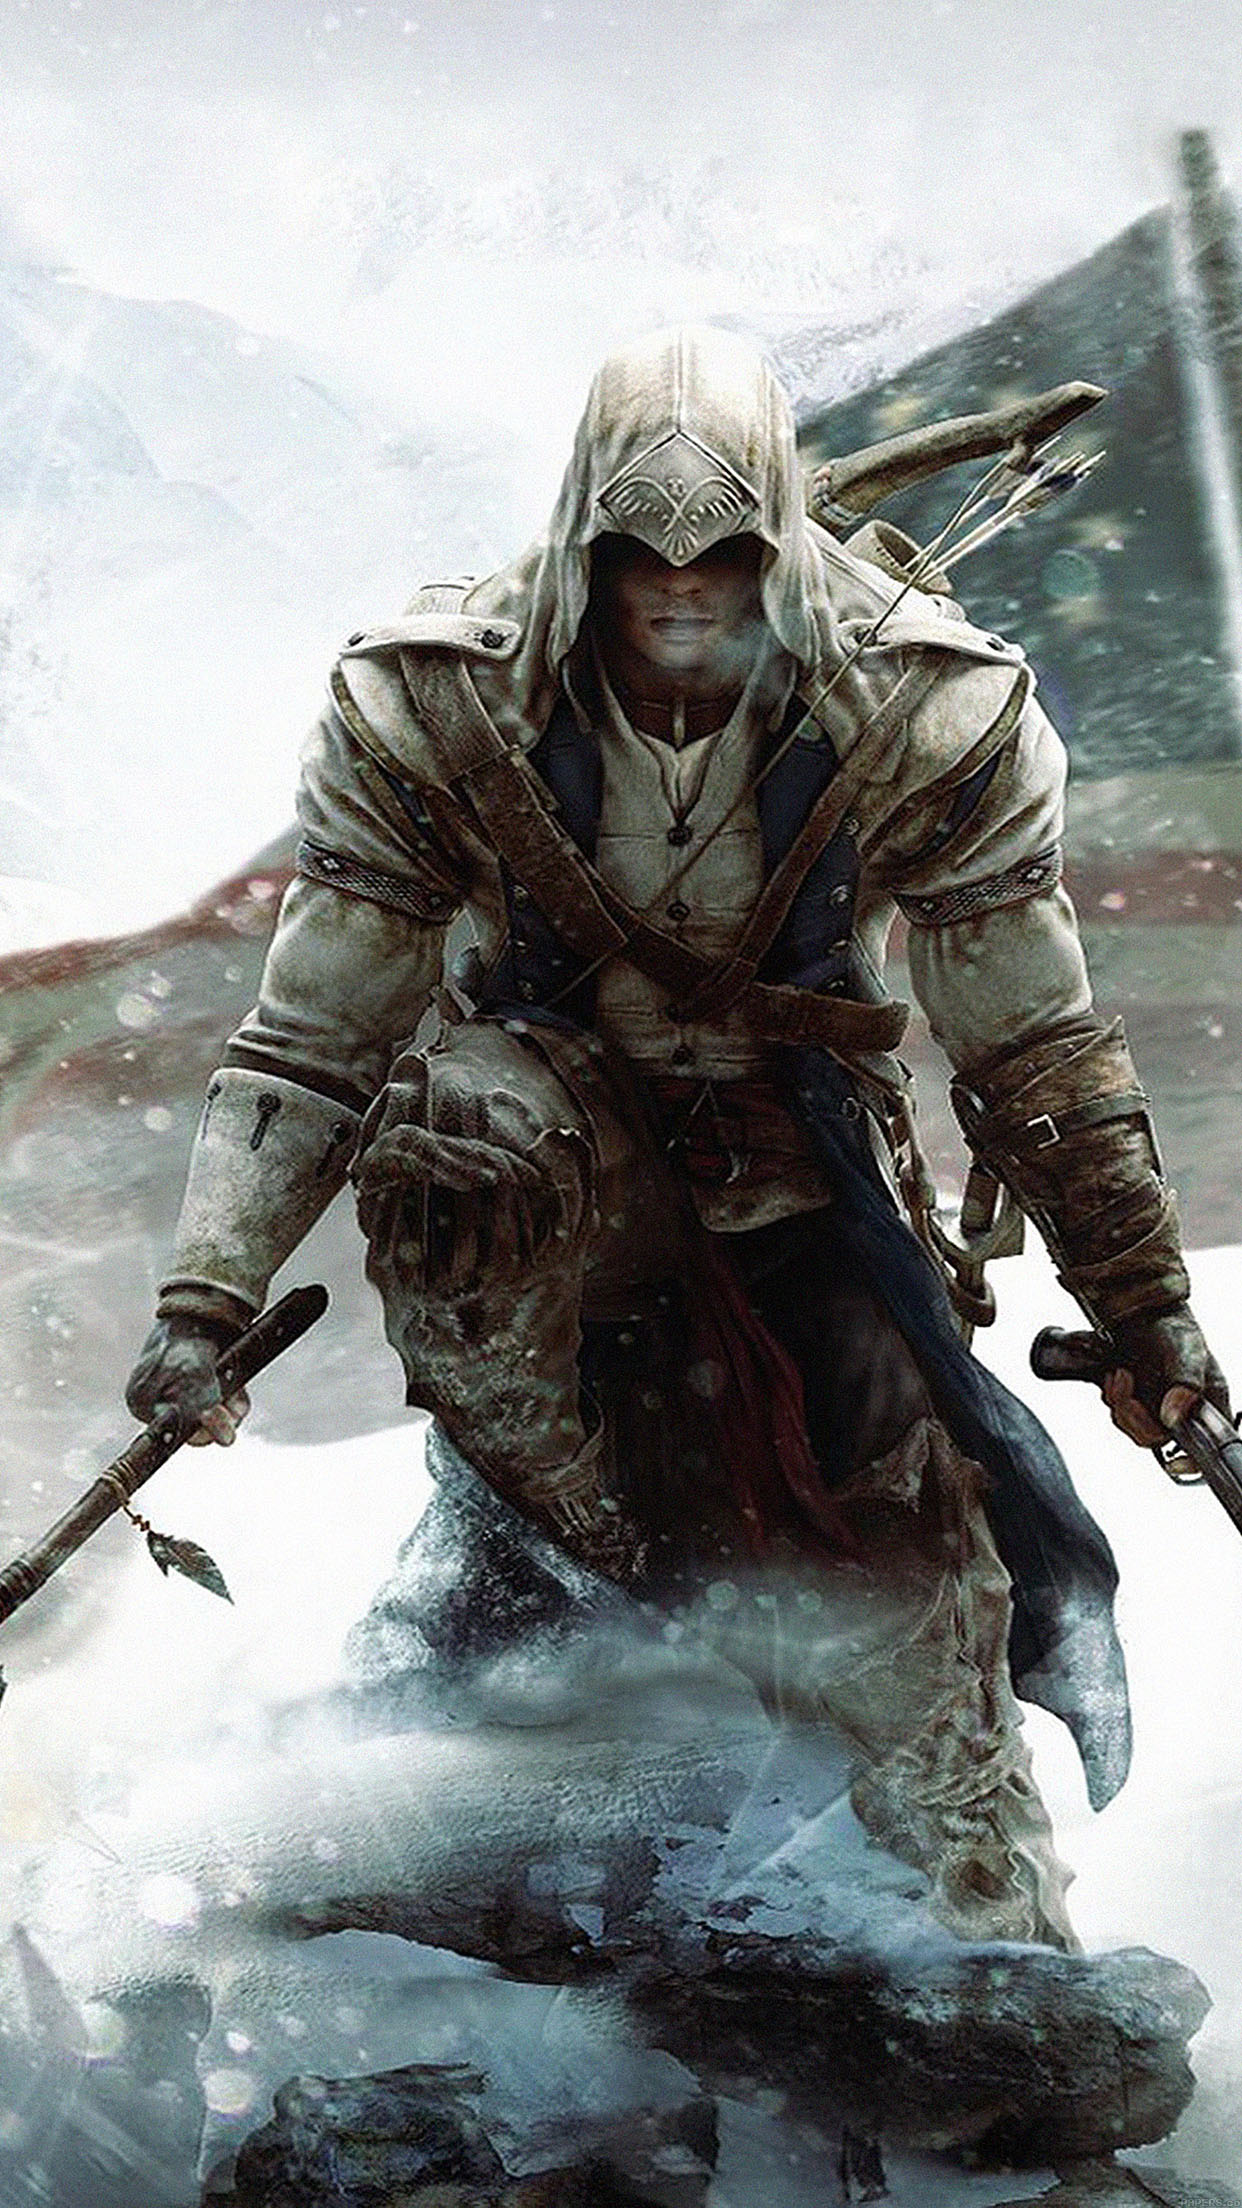 Hunter X Hunter Iphone 6 Wallpaper Ab84 Wallpaper Assasines Creed Unity Snow Game Papers Co